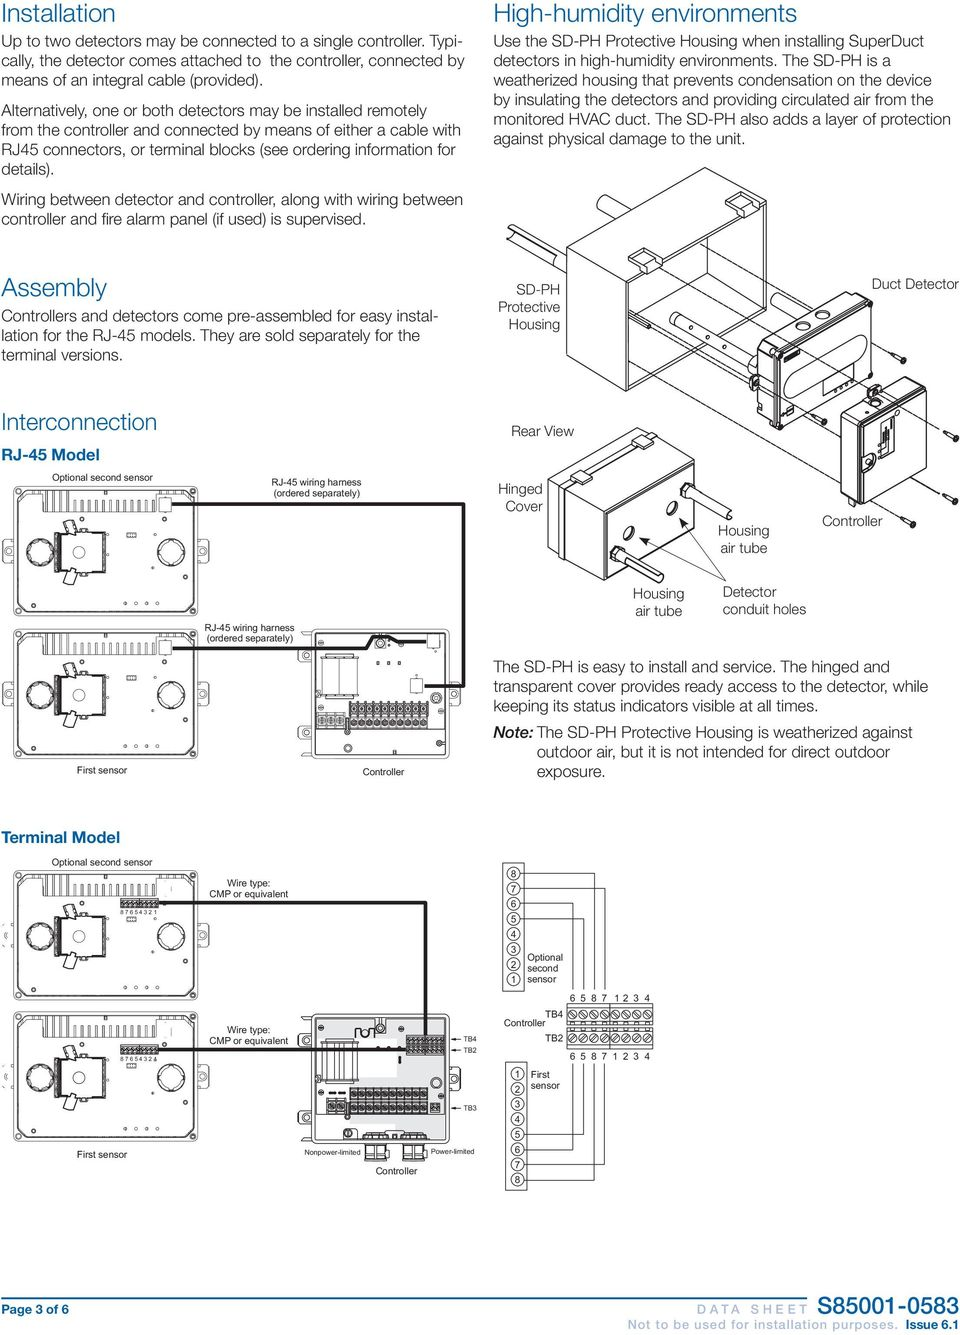 Four Wire Duct Smoke Detector Pdf Circuit Diagram Humidity Transmitter Electrical Schematic Sensor Page Of D A T S H E Details Wiring Between And Controller Along With Fire